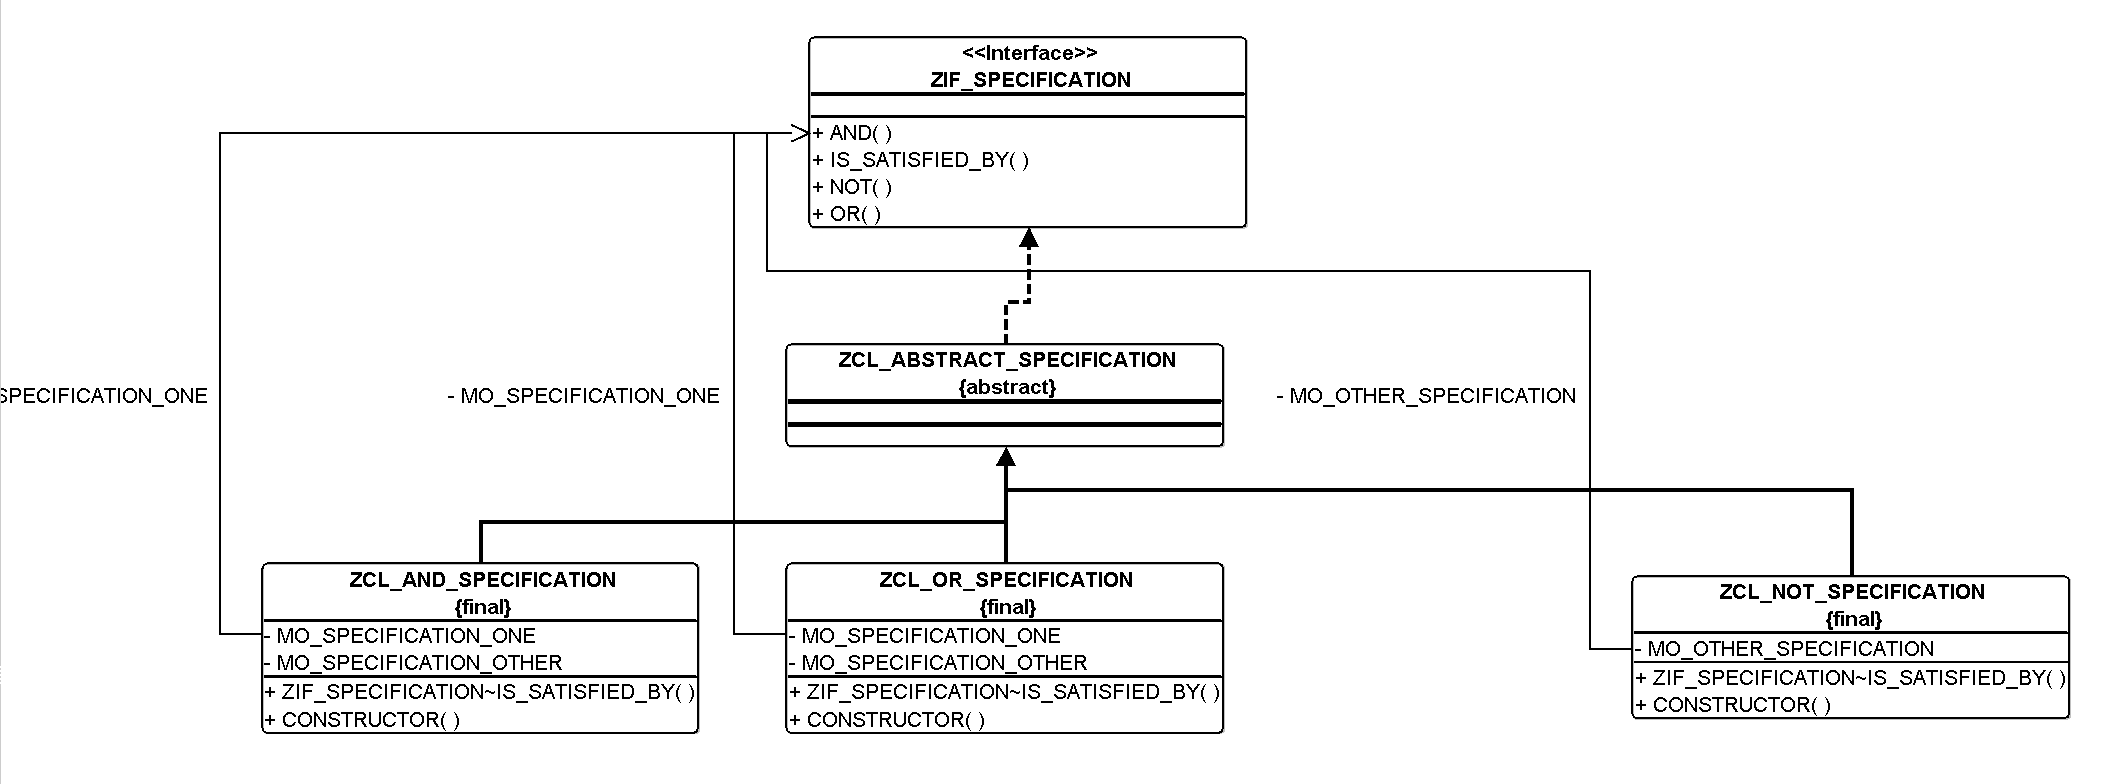 uml_specification.PNG